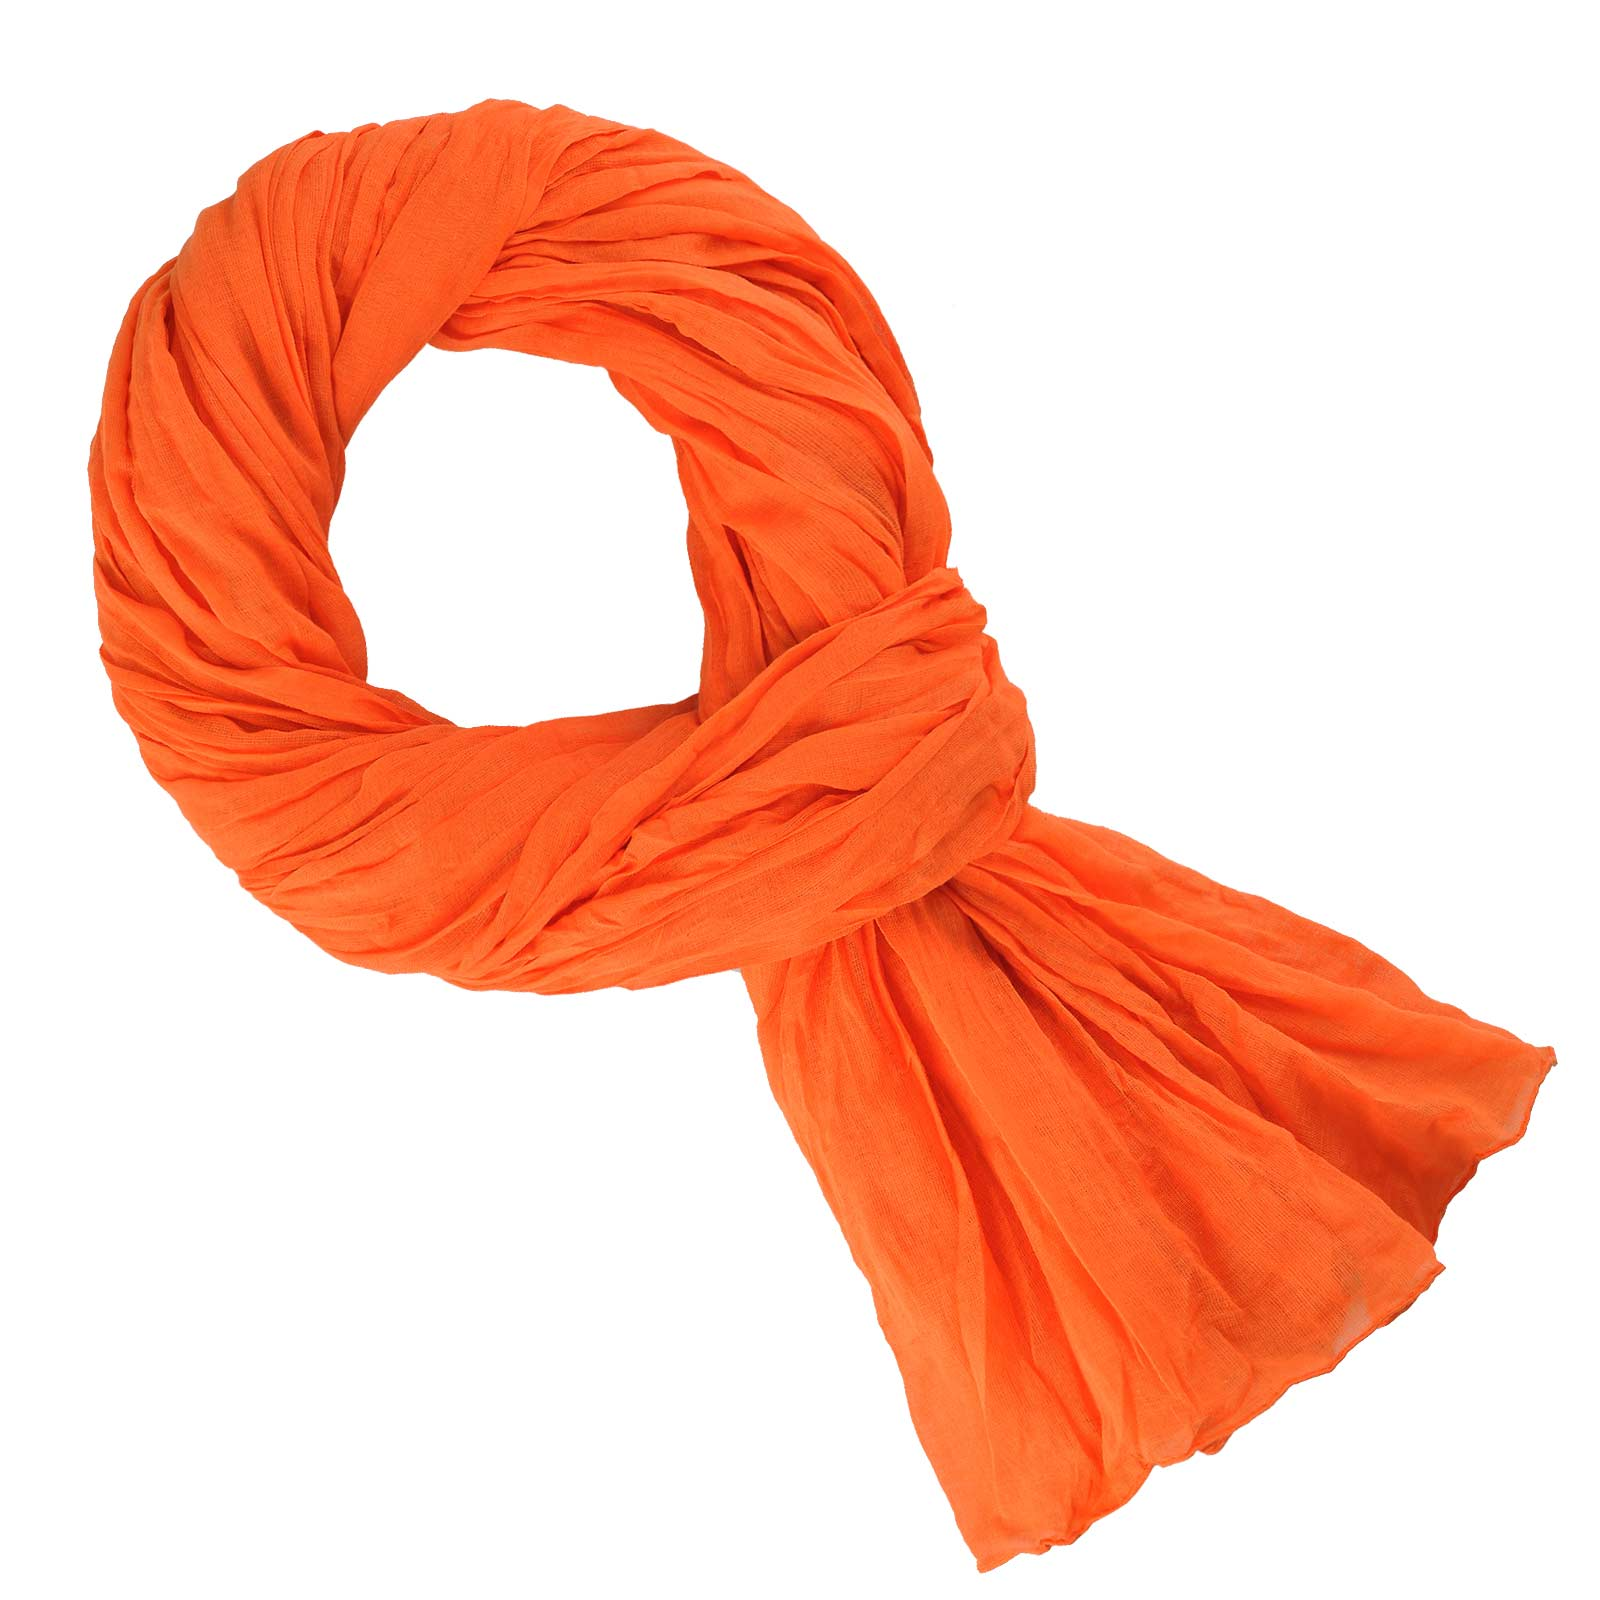 AT-05271-F10-cheche-coton-orange-uni